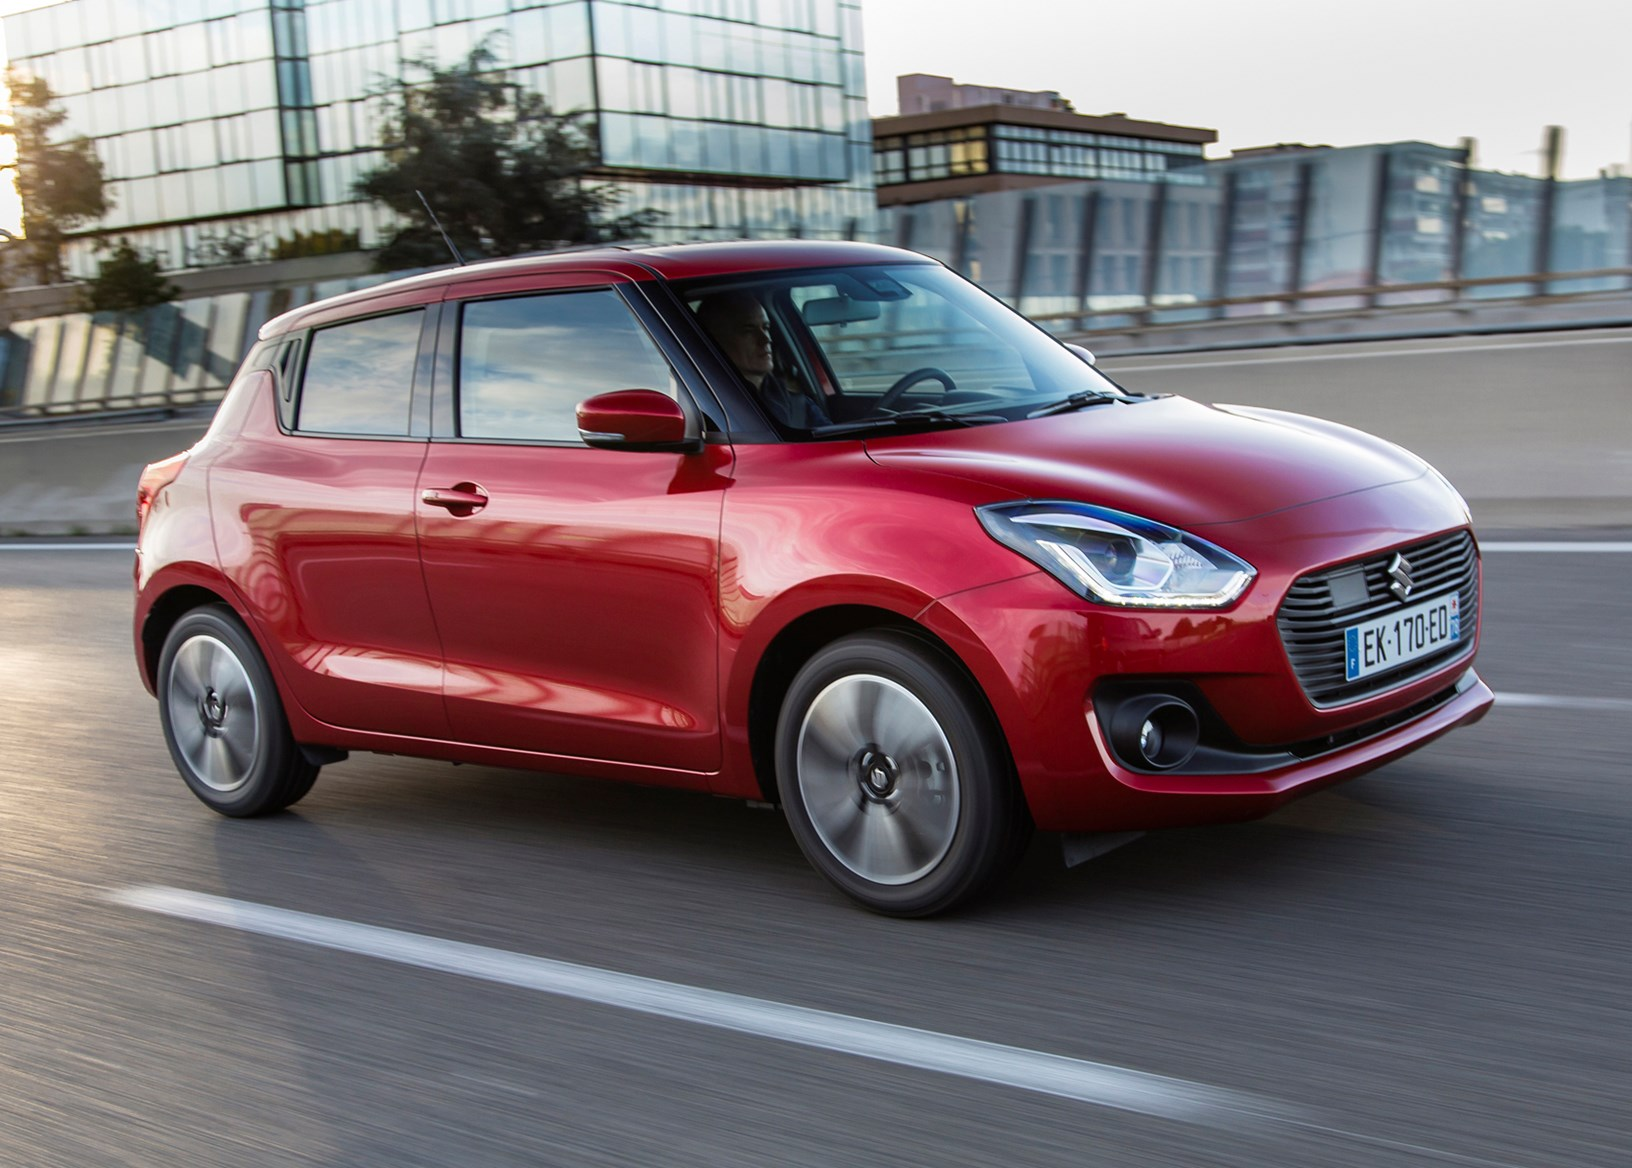 Suzuki Swift 2018 >> Suzuki Swift Hatchback Review (2017 - ) | Parkers